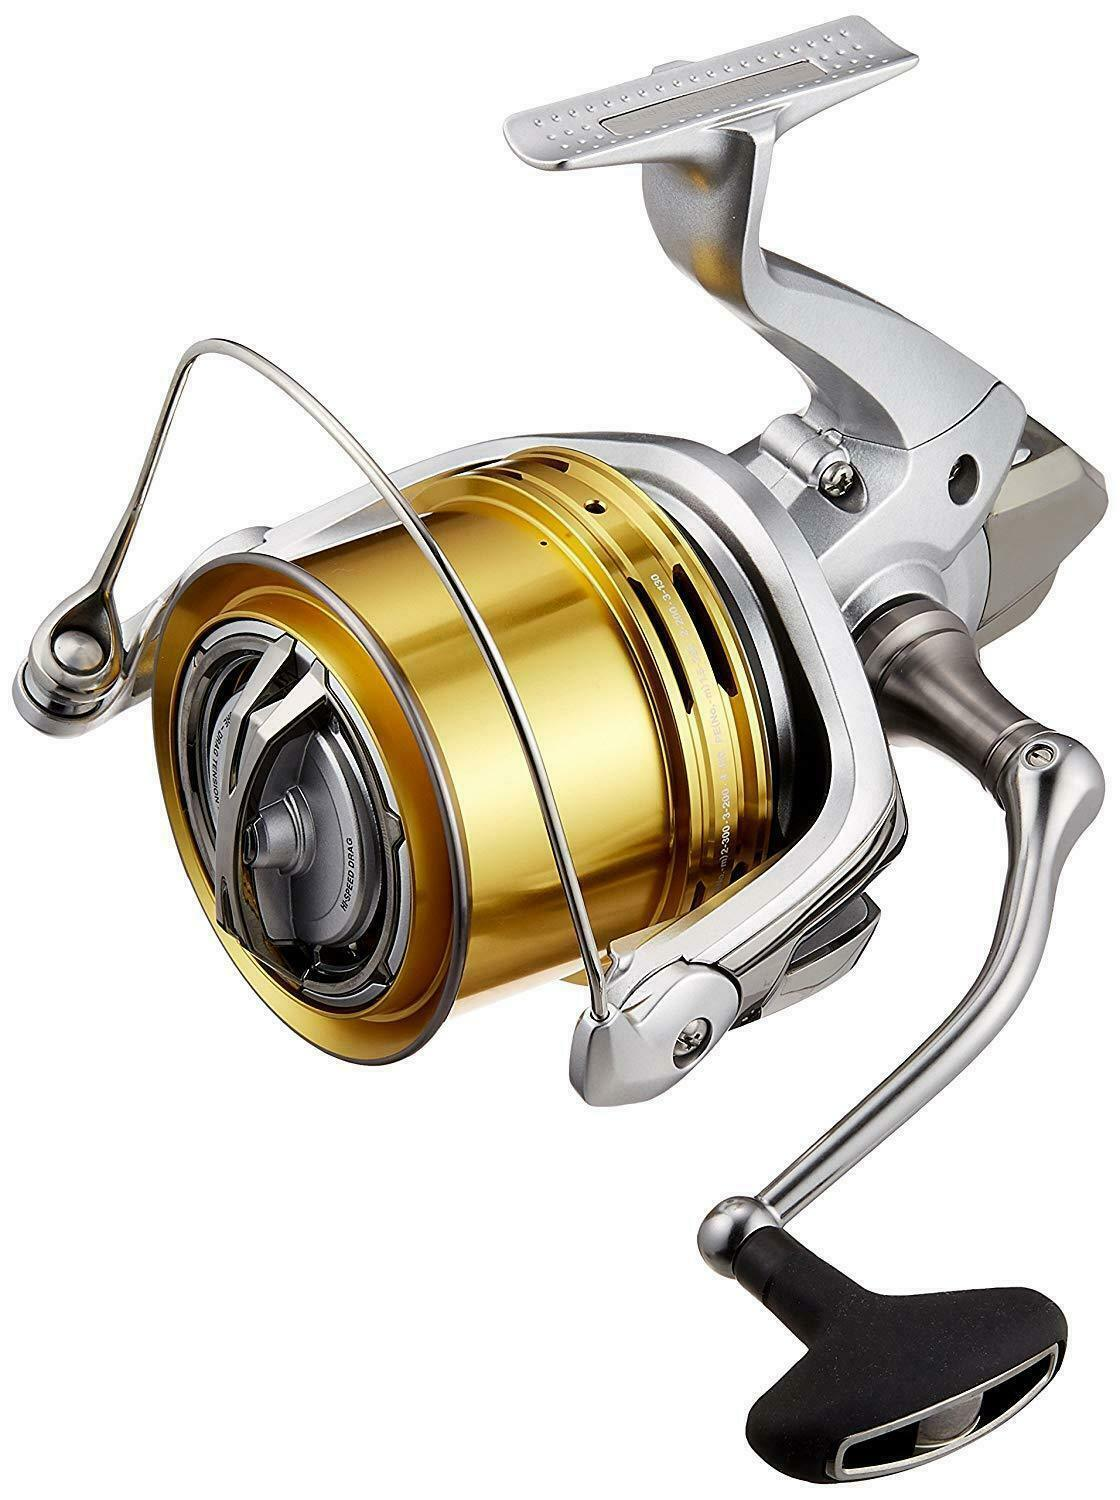 Throwing Fishing 18 SURF LEADER CI4 + SD35 Fishing REEL